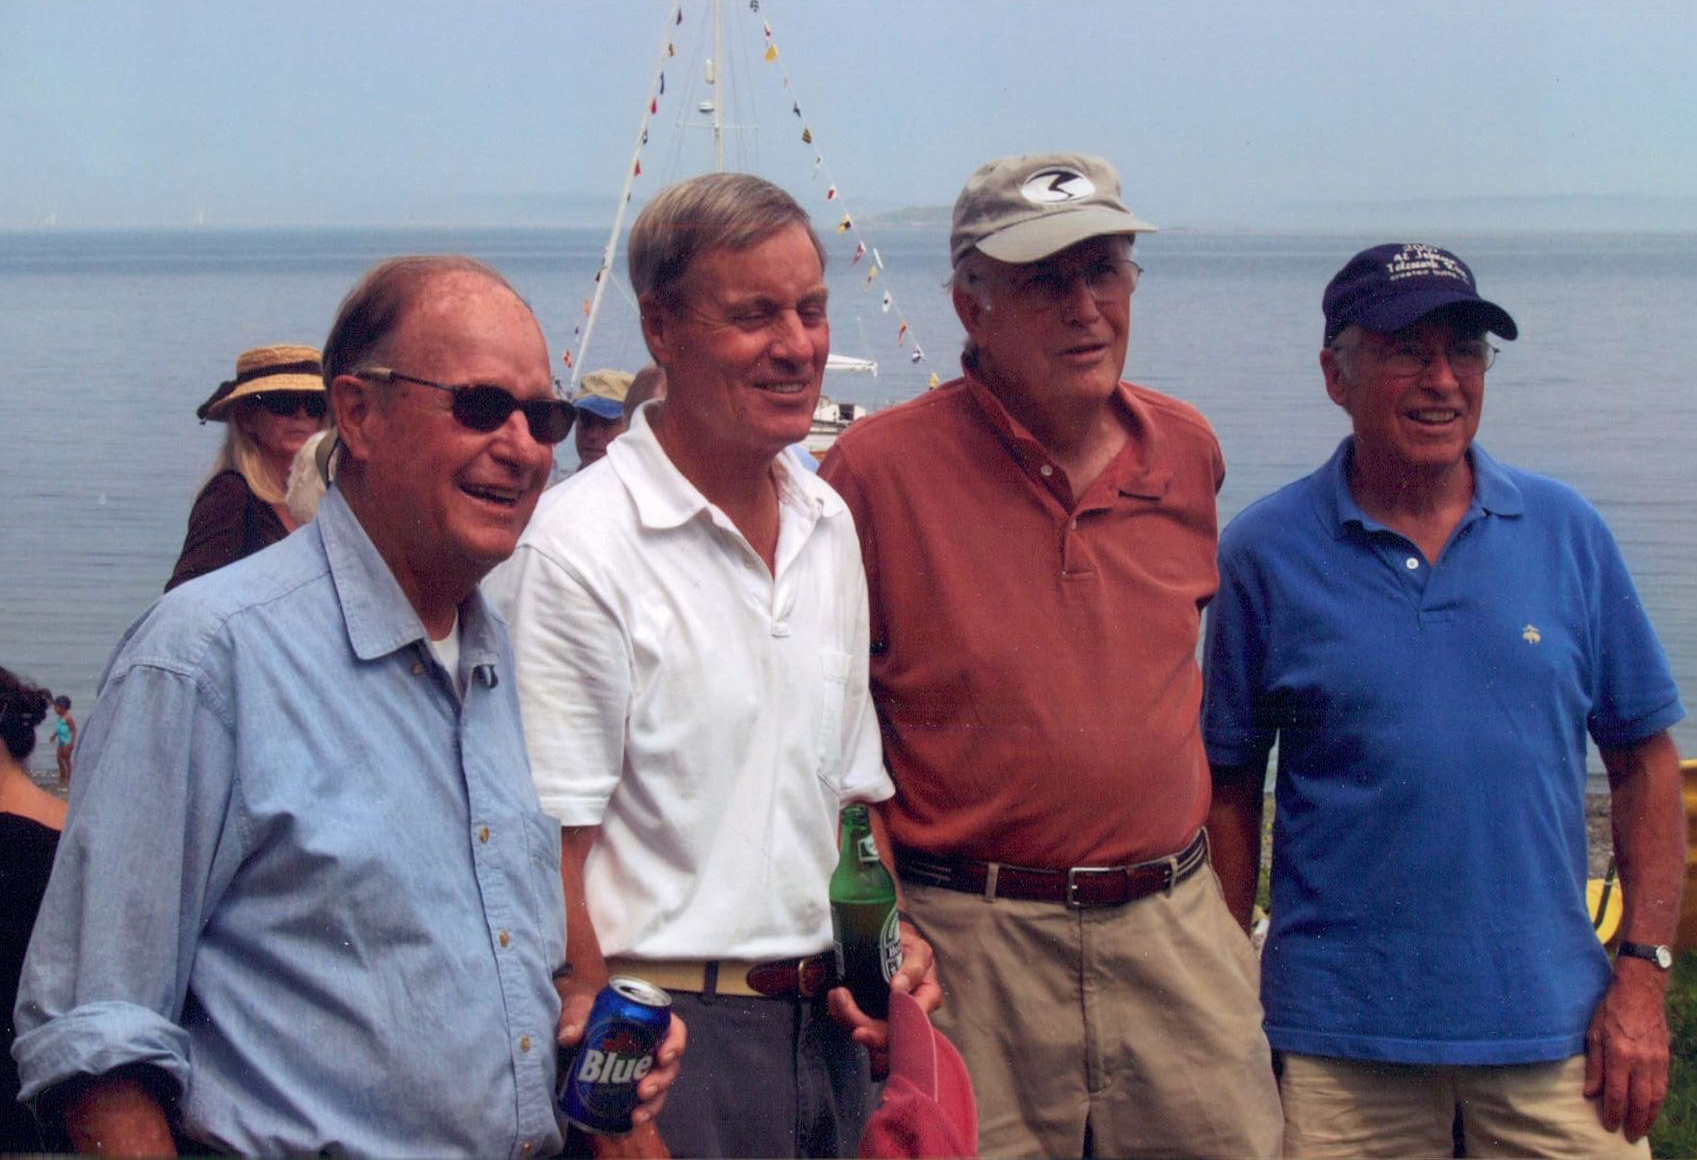 Gimmy with his three brothers at Mullen's Head Park on North Haven for his 80th birthday